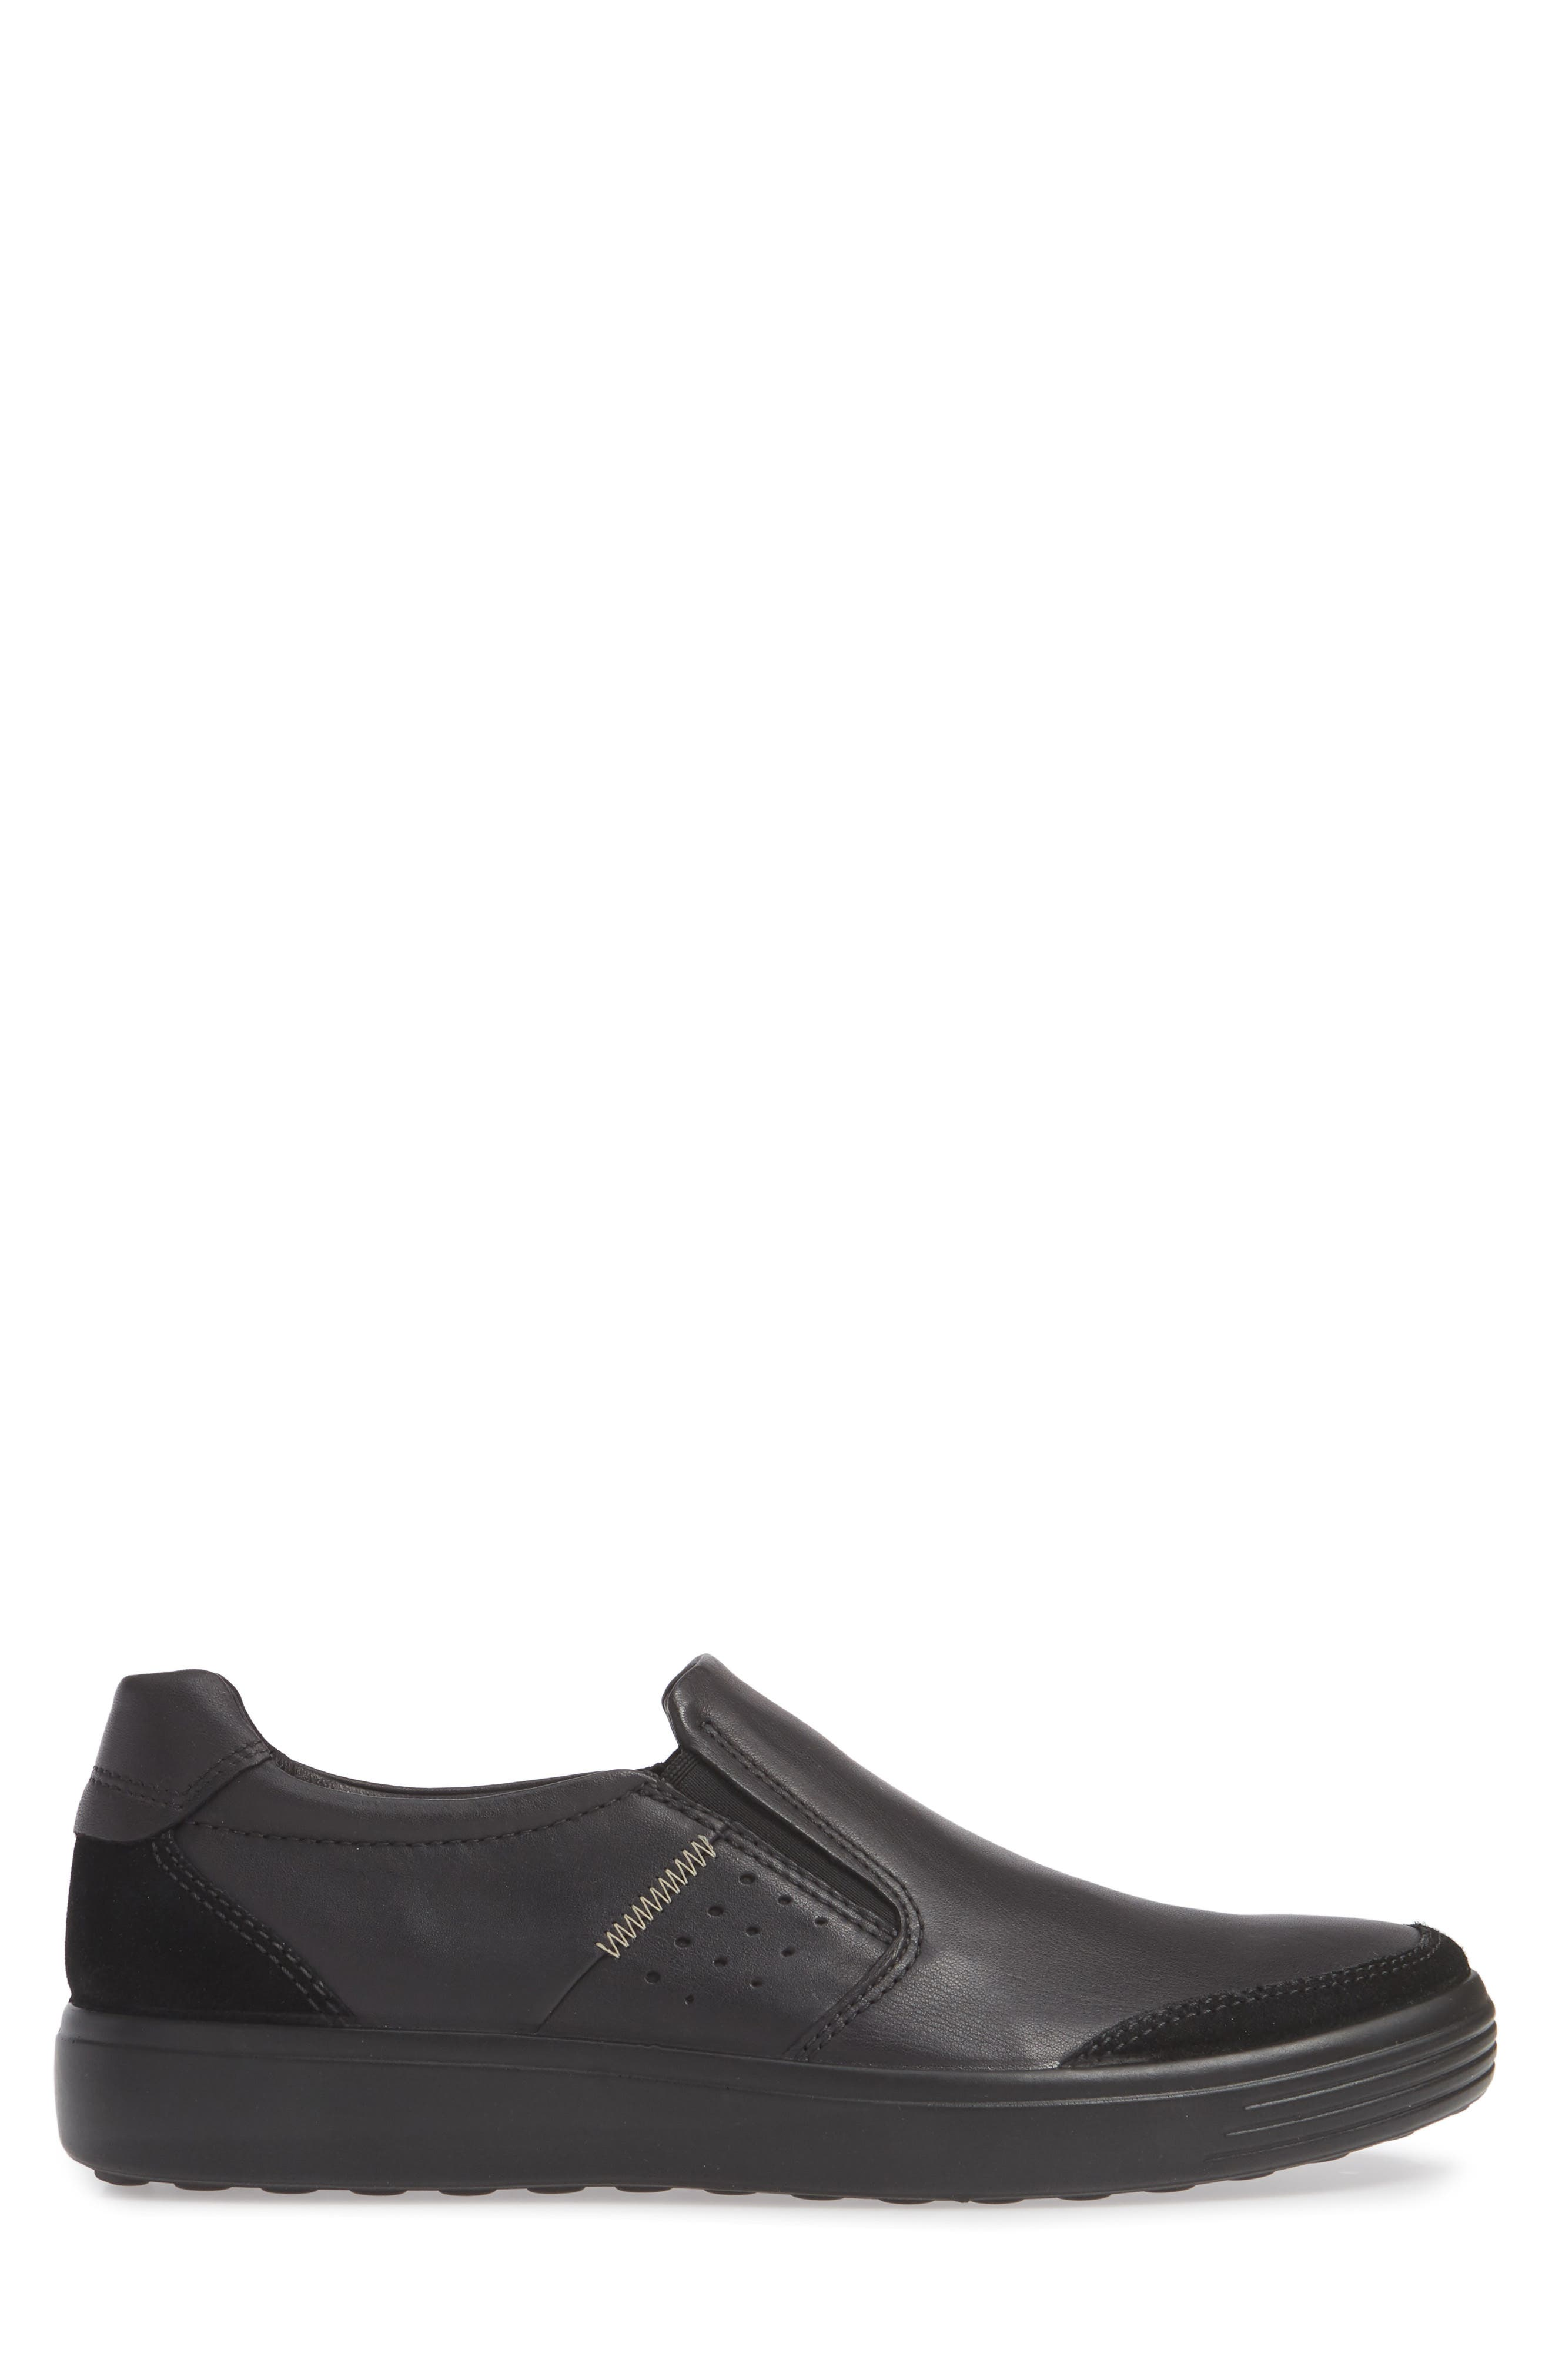 ECCO, Soft 7 Relaxed Slip-On, Alternate thumbnail 3, color, BLACK LEATHER